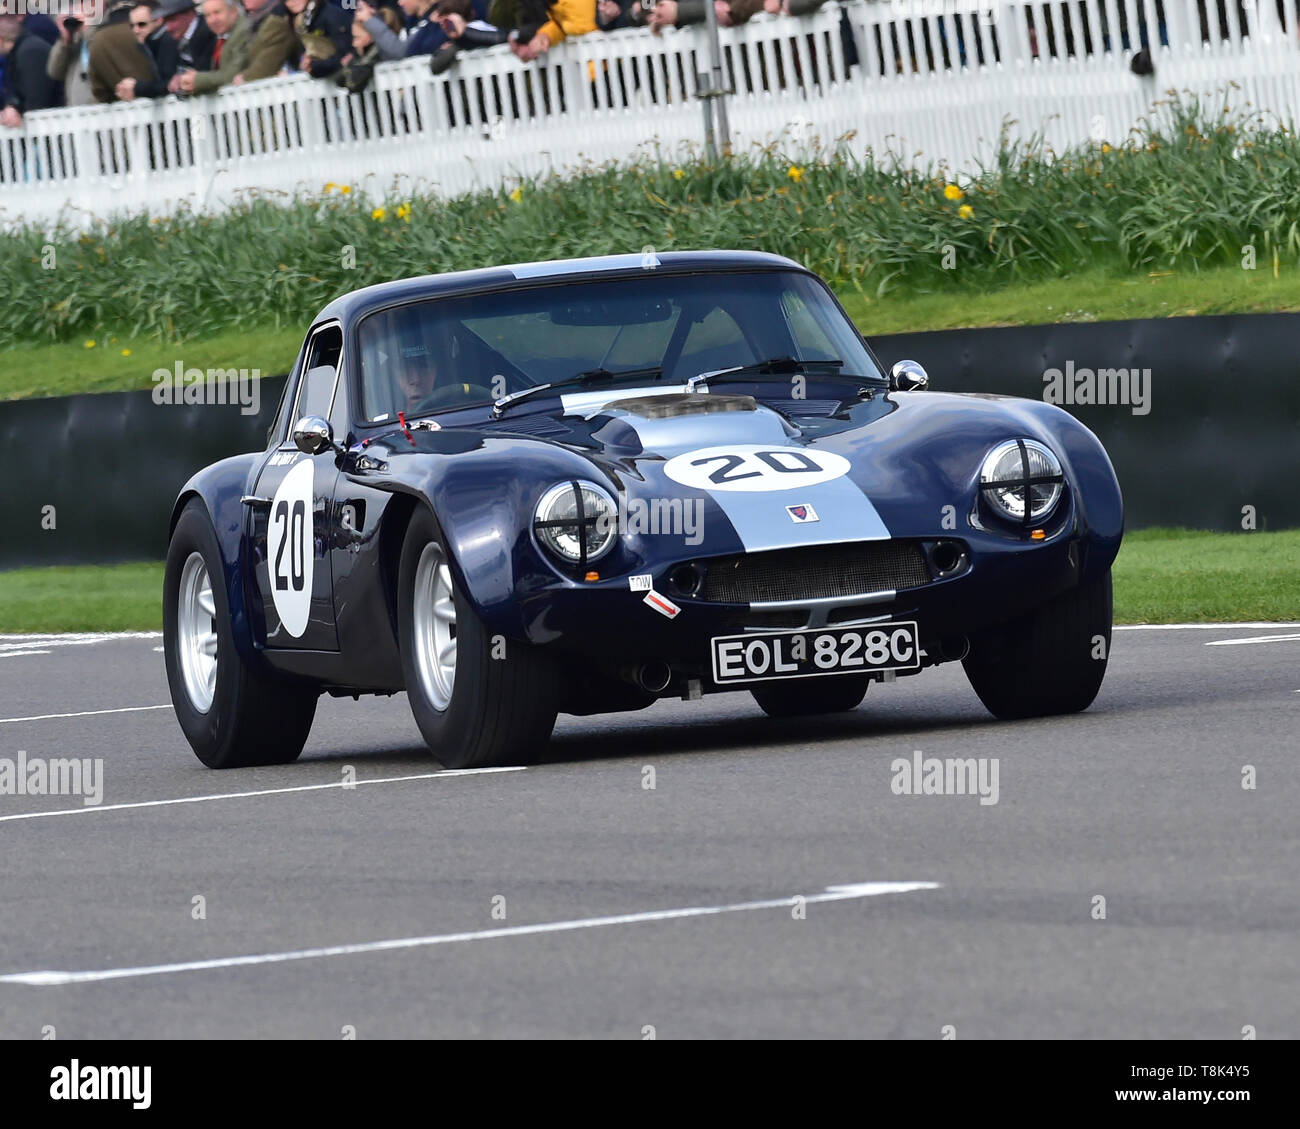 John Spiers, Tiff Needell, TVR Griffith, Graham Hill Trophy, Closed cockpit GT cars, Prototype cars, Spirit of the RAC TT Races 1960-1964, 77th Member - Stock Image